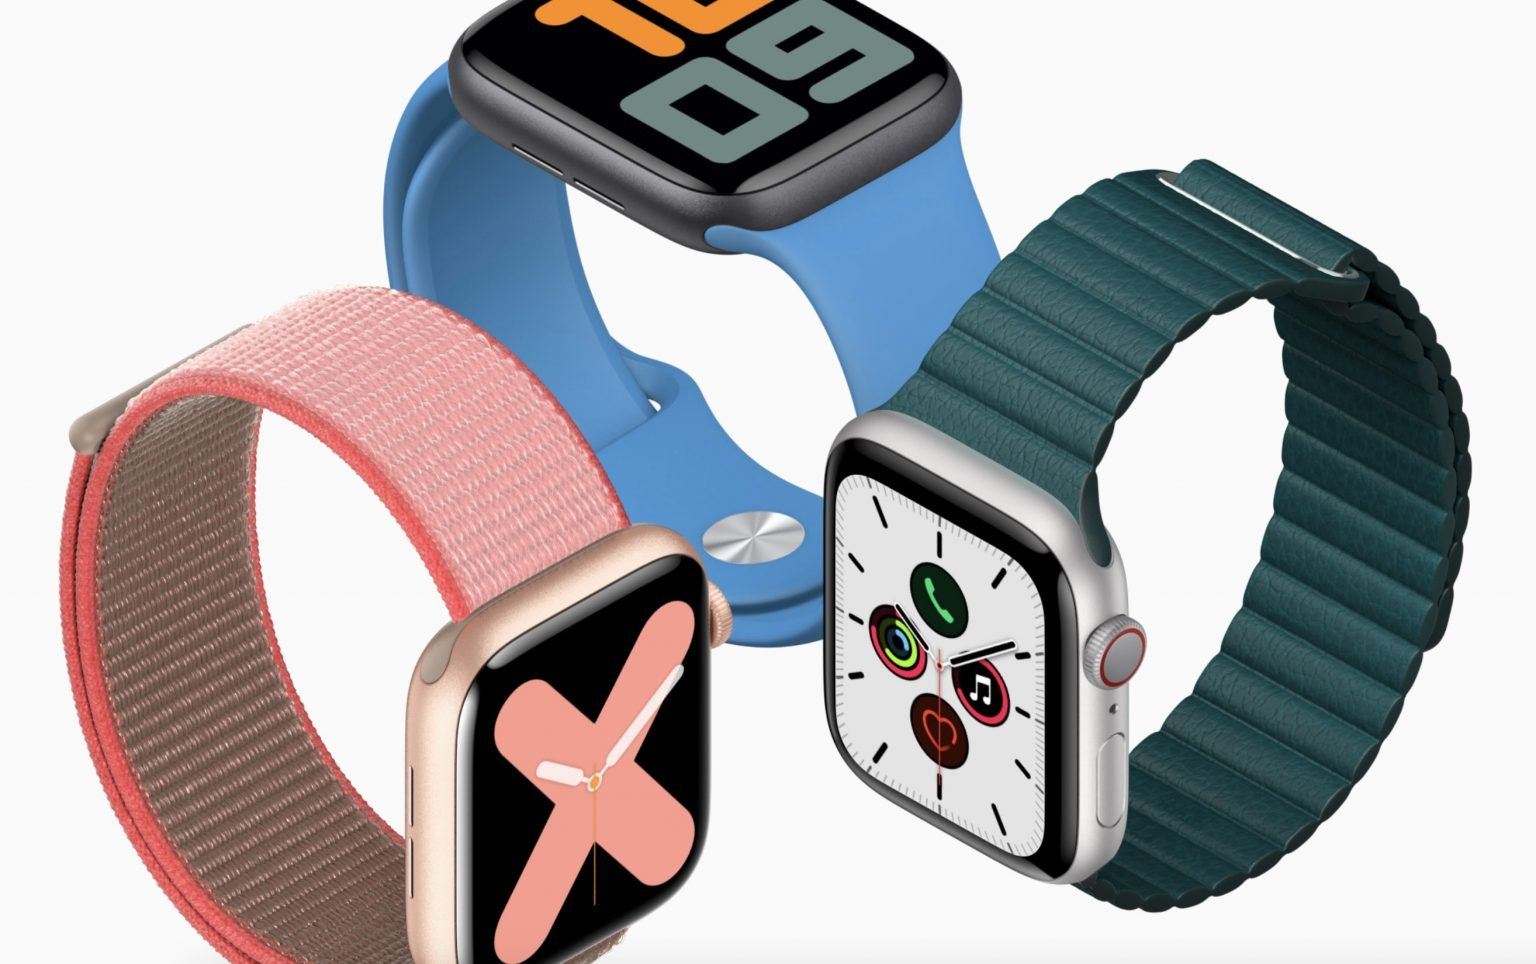 Apple Watch Series 6 is rumored to have new colors, pre-order on the day of release